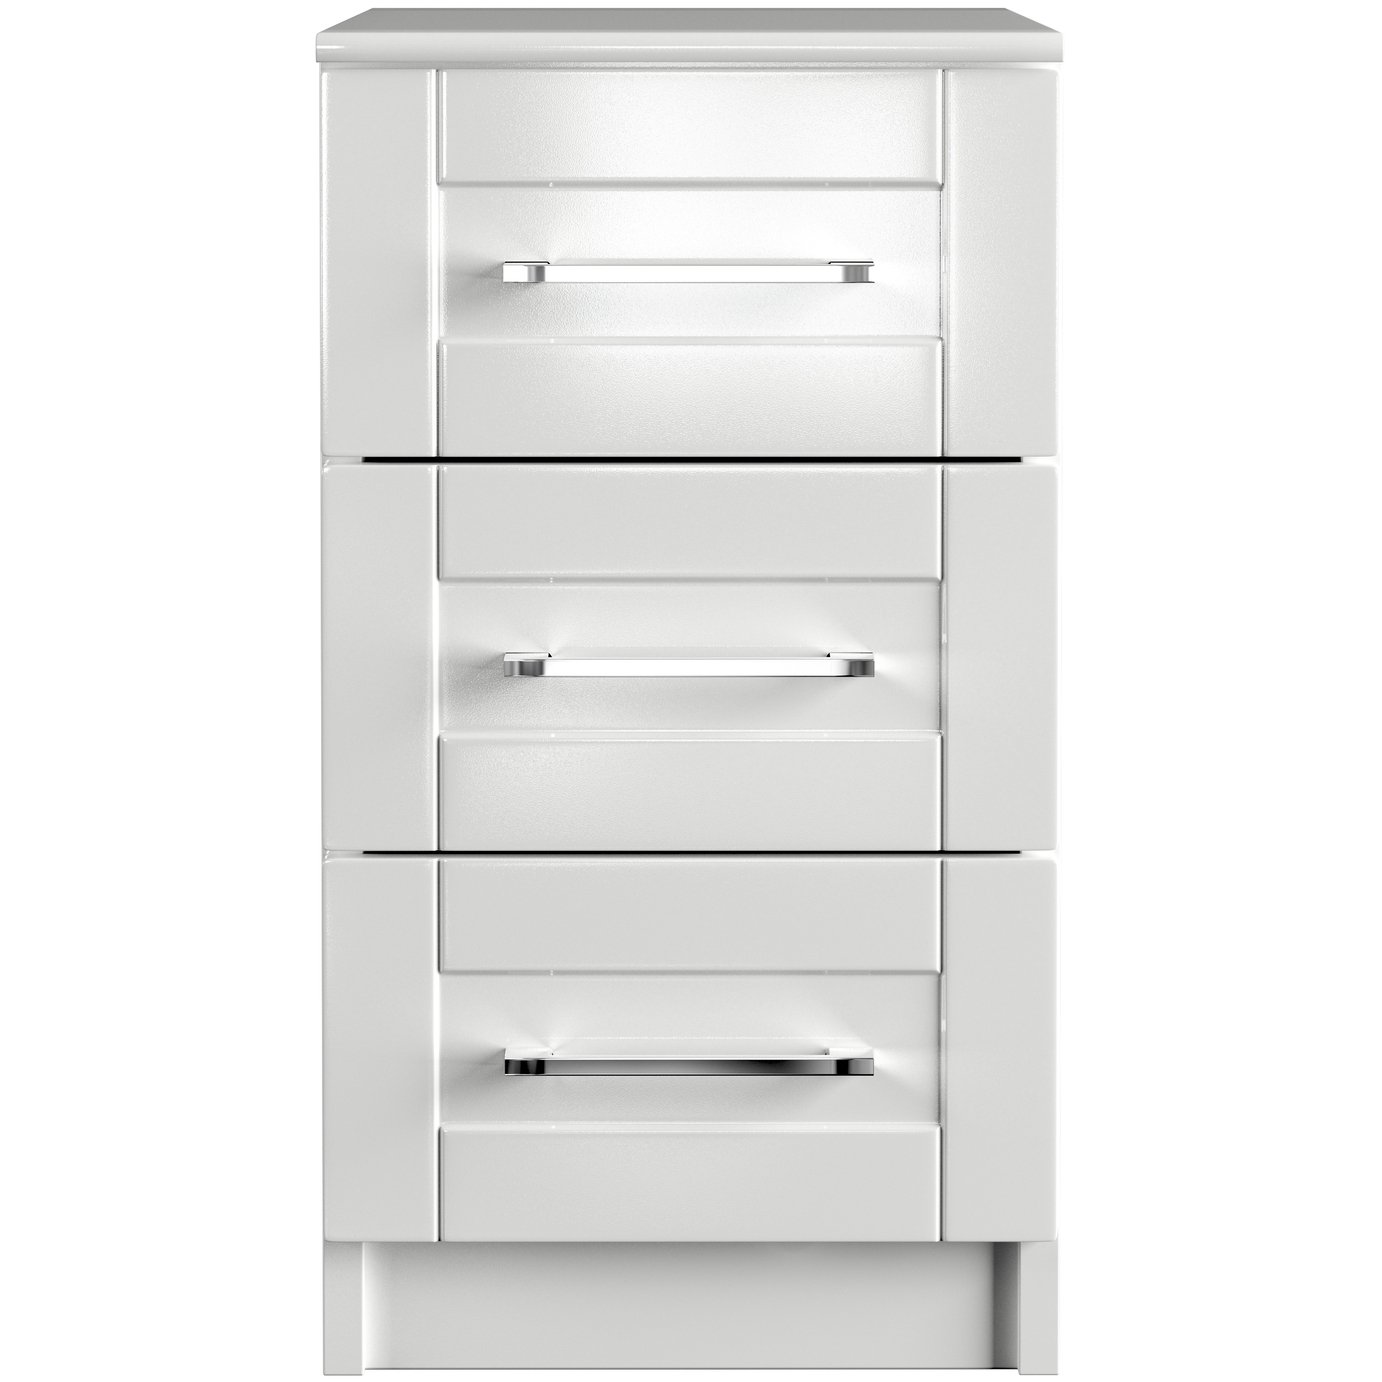 One Call Colby Gloss 3 Drawer Bedside Cabinet - White